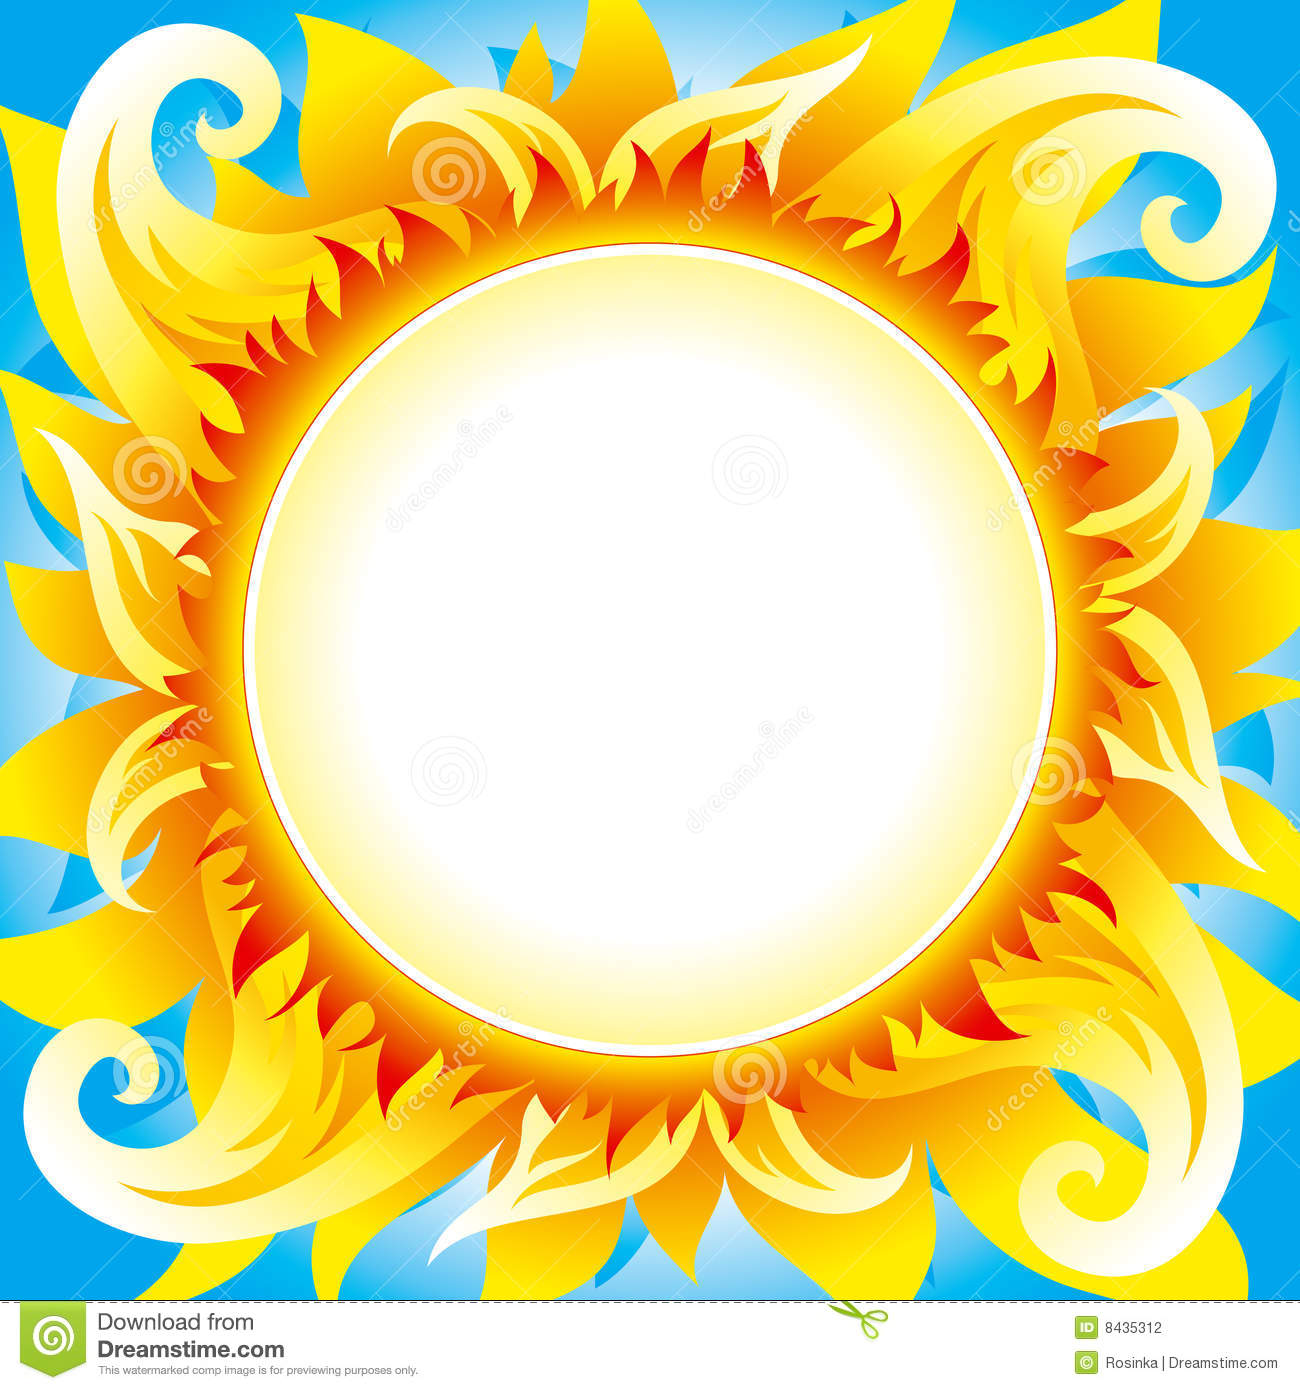 Bright fiery sun on blue sky with round place for text in center of ...